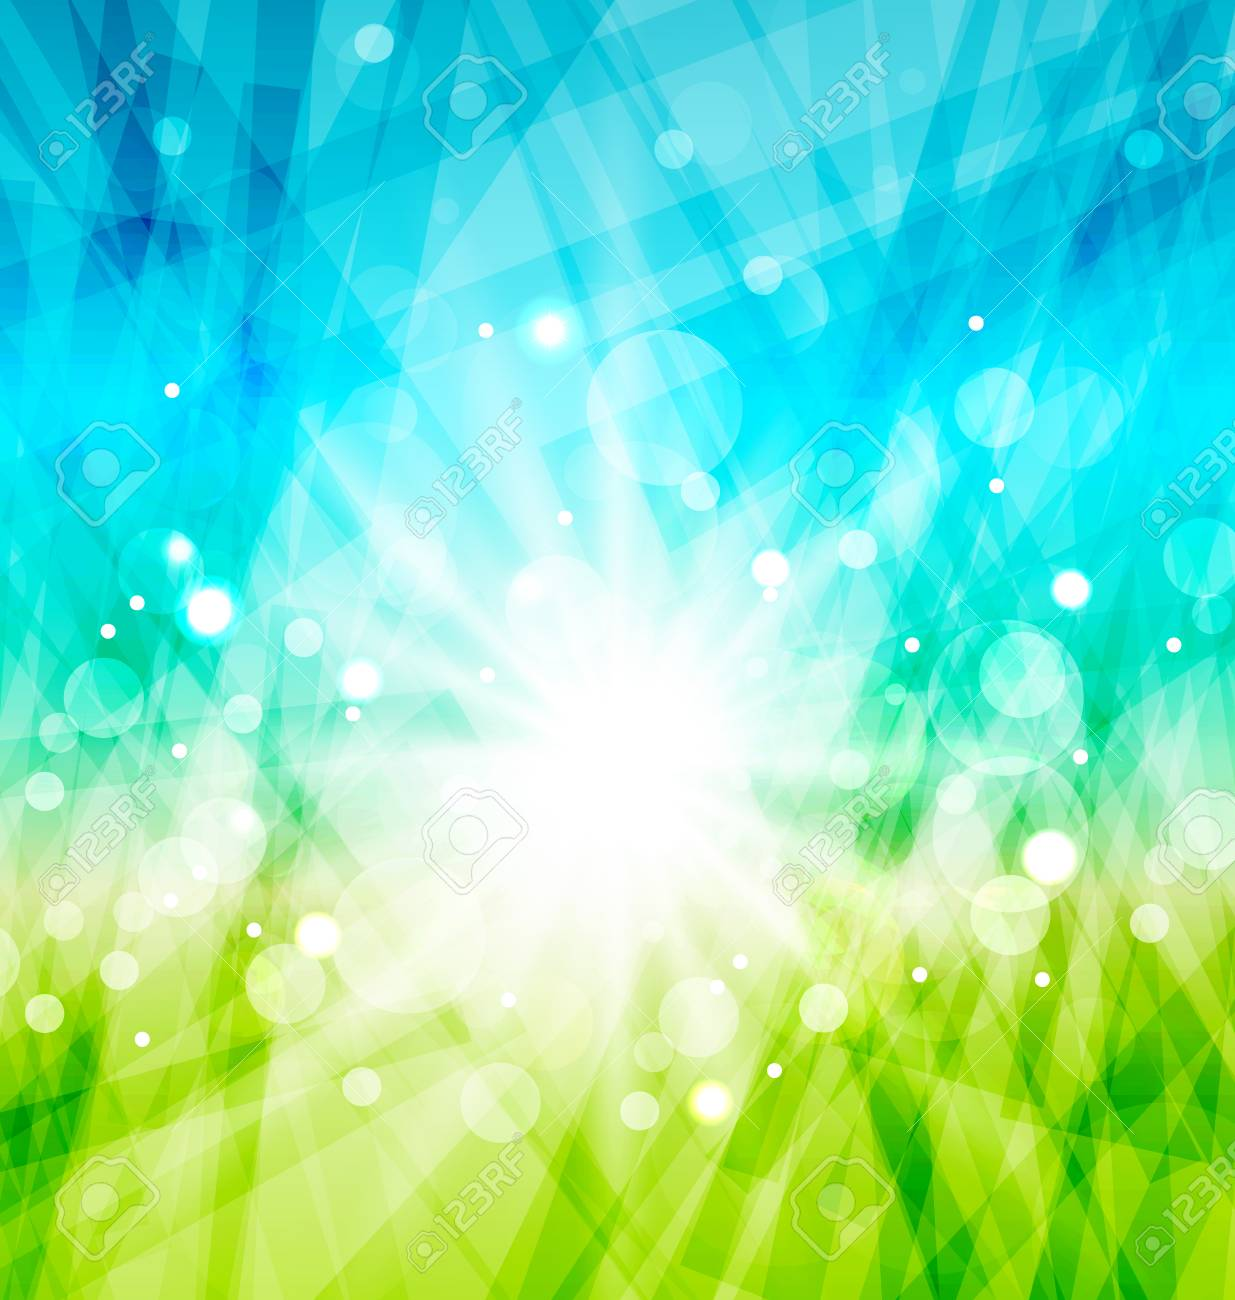 Illustration modern abstract background with sun rays - vector Stock Vector - 25529434